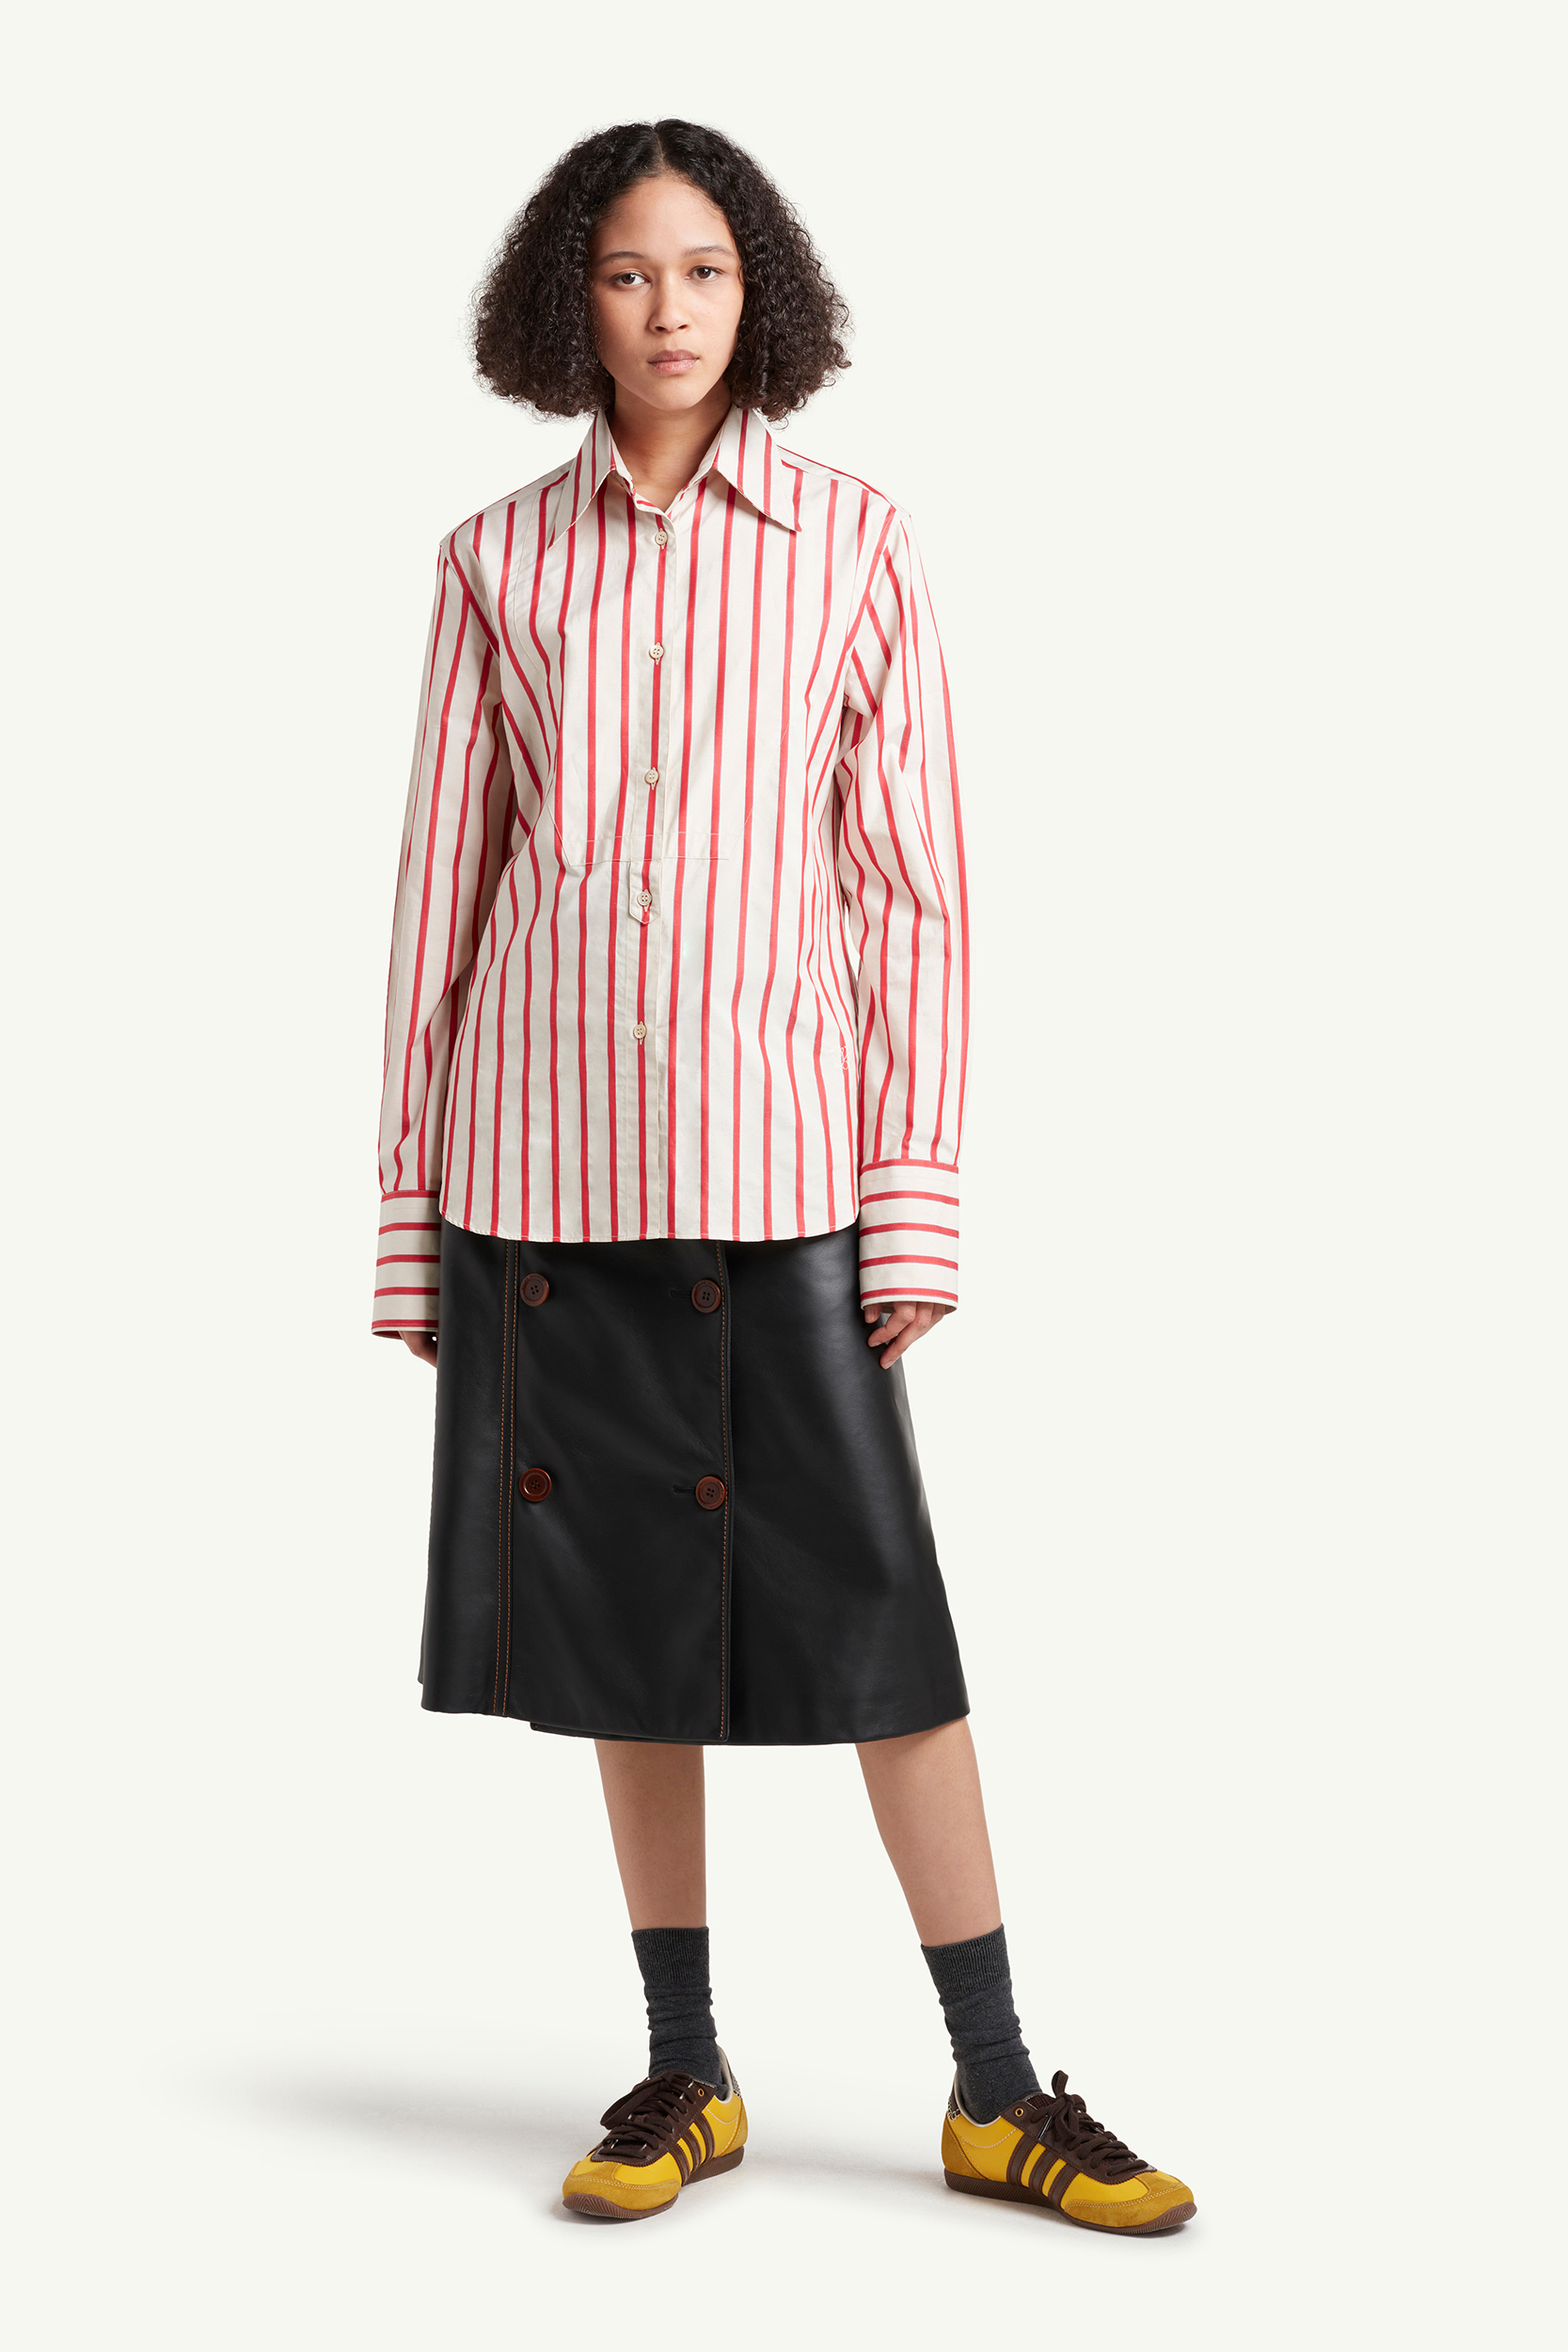 Wales Bonner Menswear Model wearing a red striped shirt and leather skirt | LRP